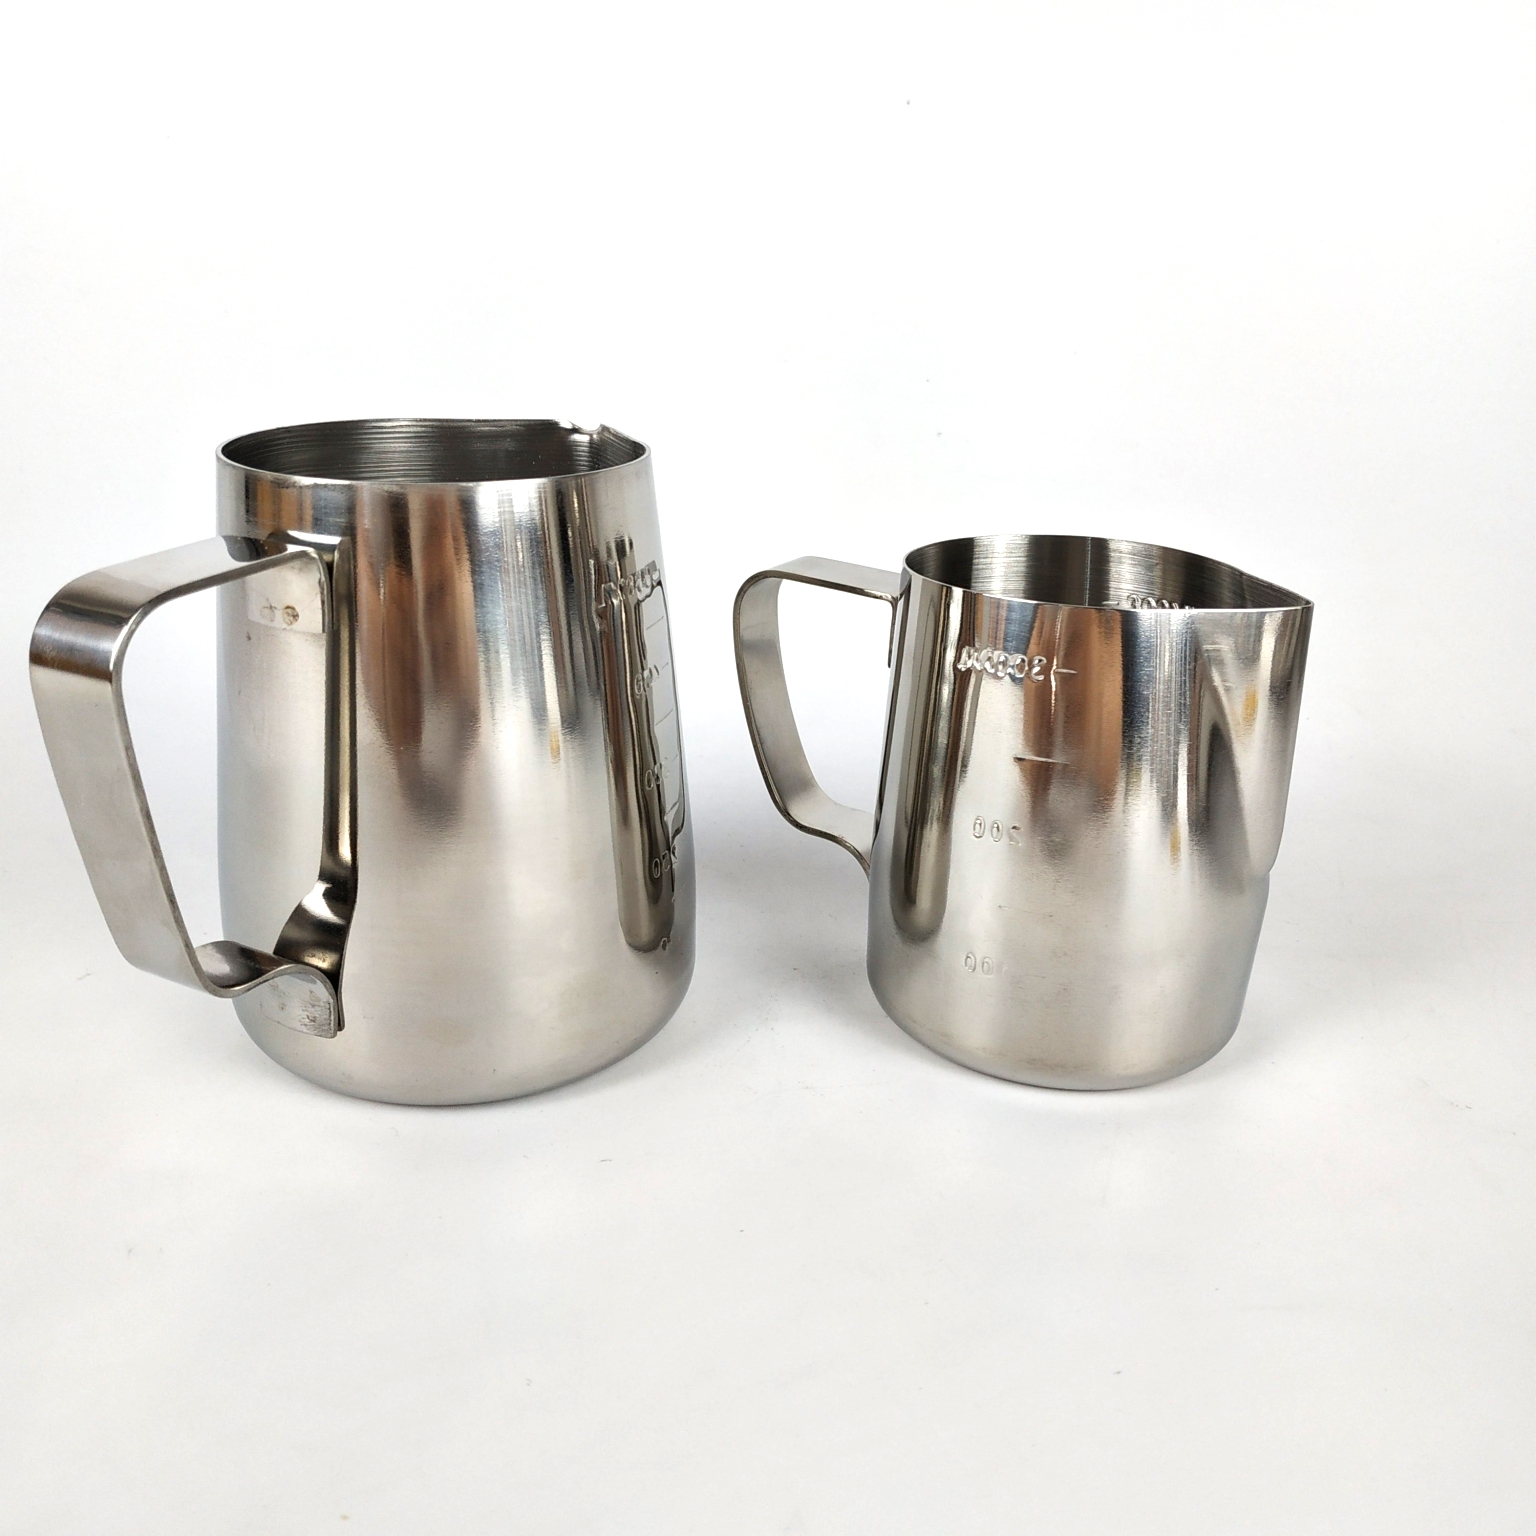 304 Stainless Steel Measuring Function Milk Frothing Jug Beer Mug